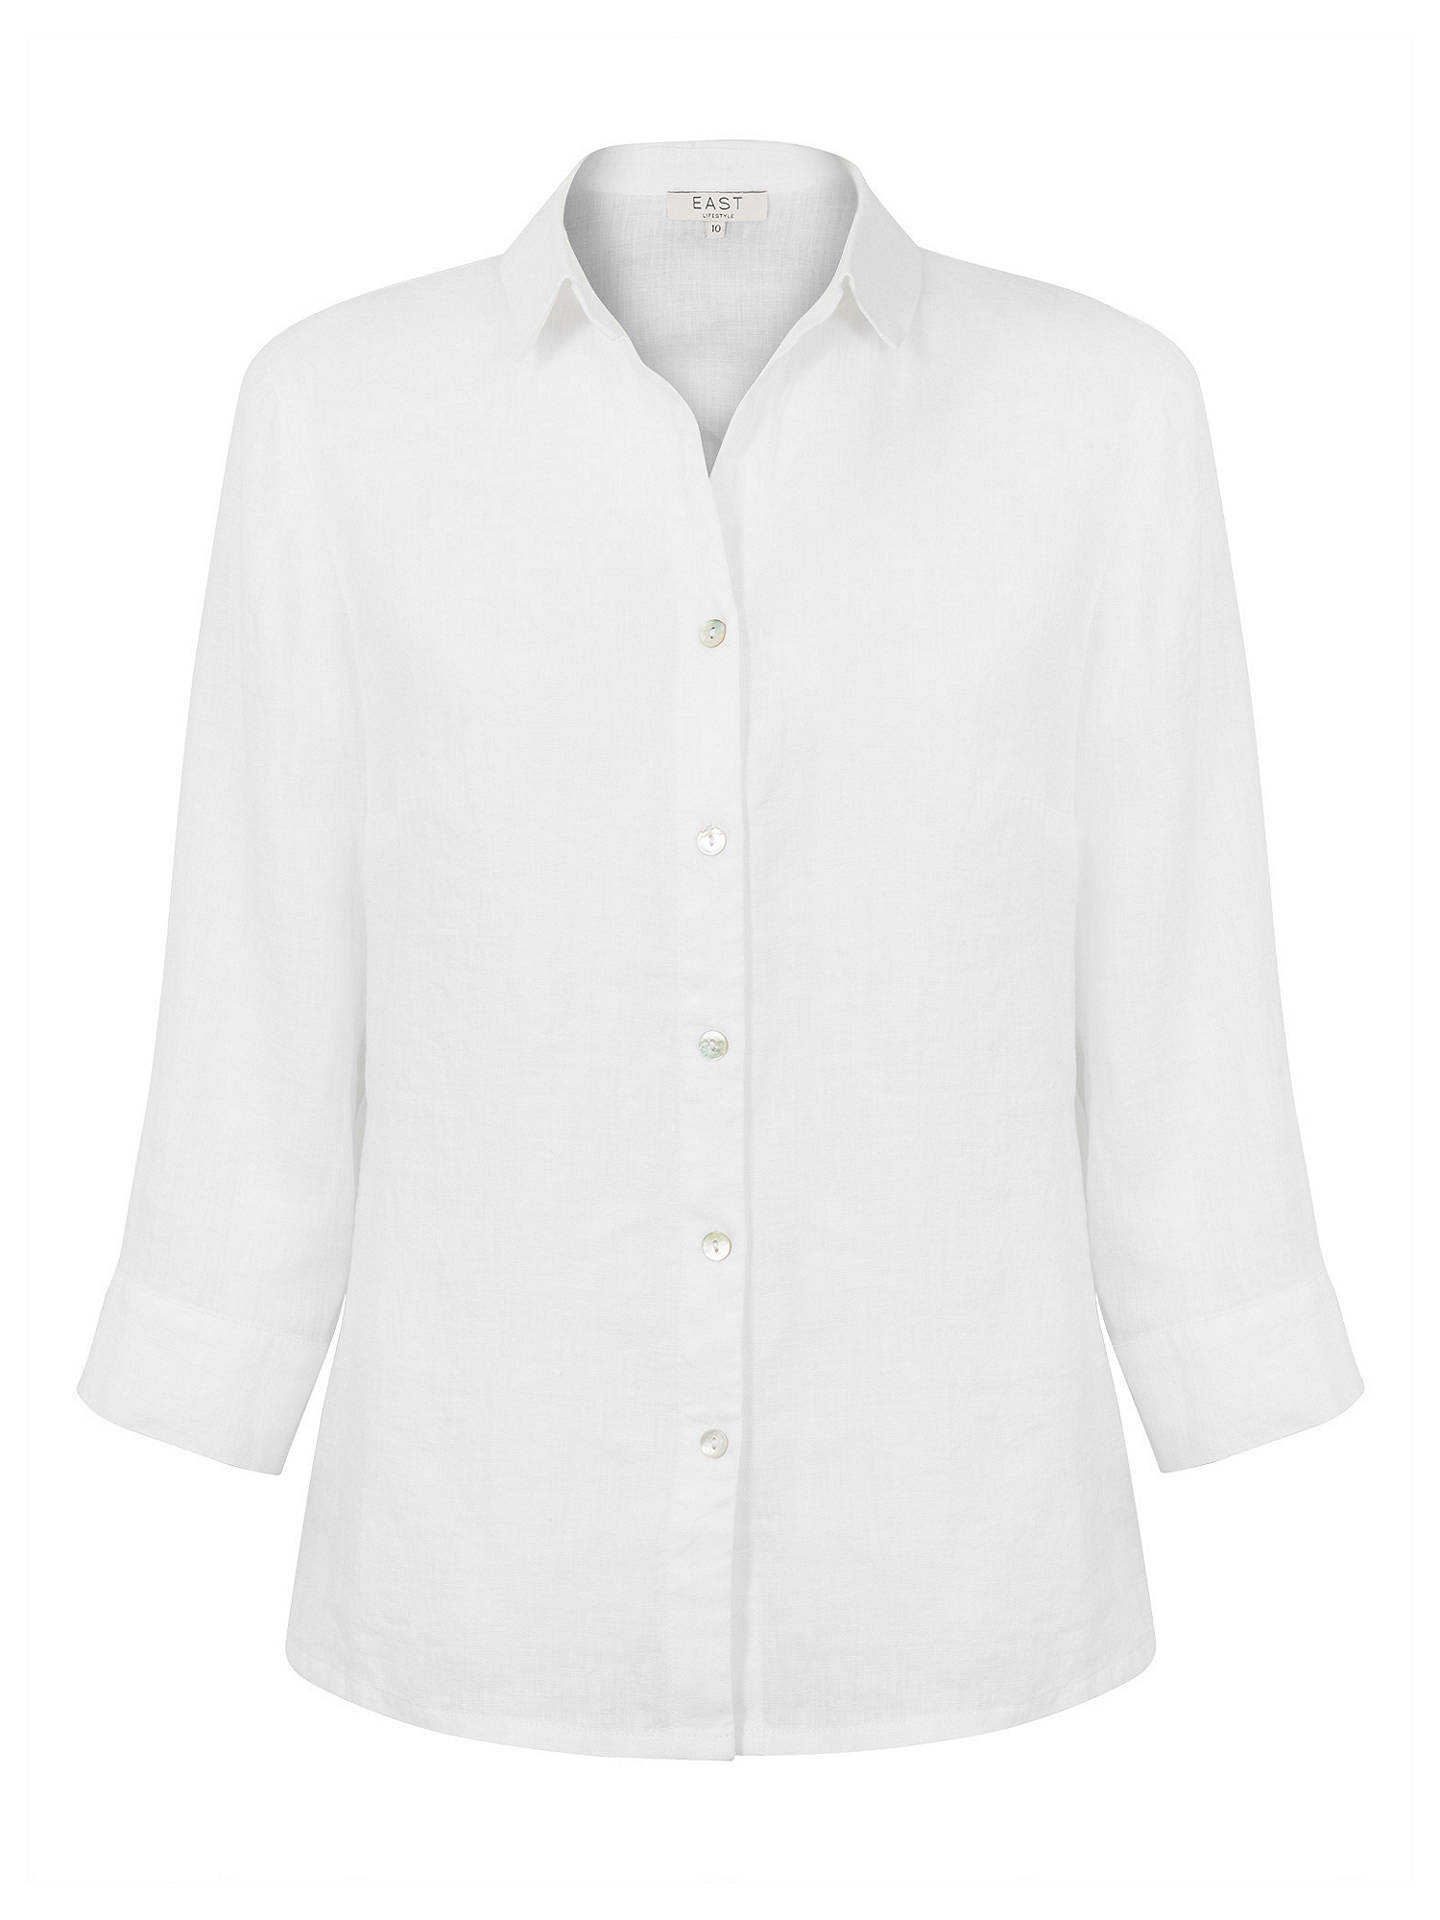 BuyEast Linen Fitted Shirt, White, 10 Online at johnlewis.com